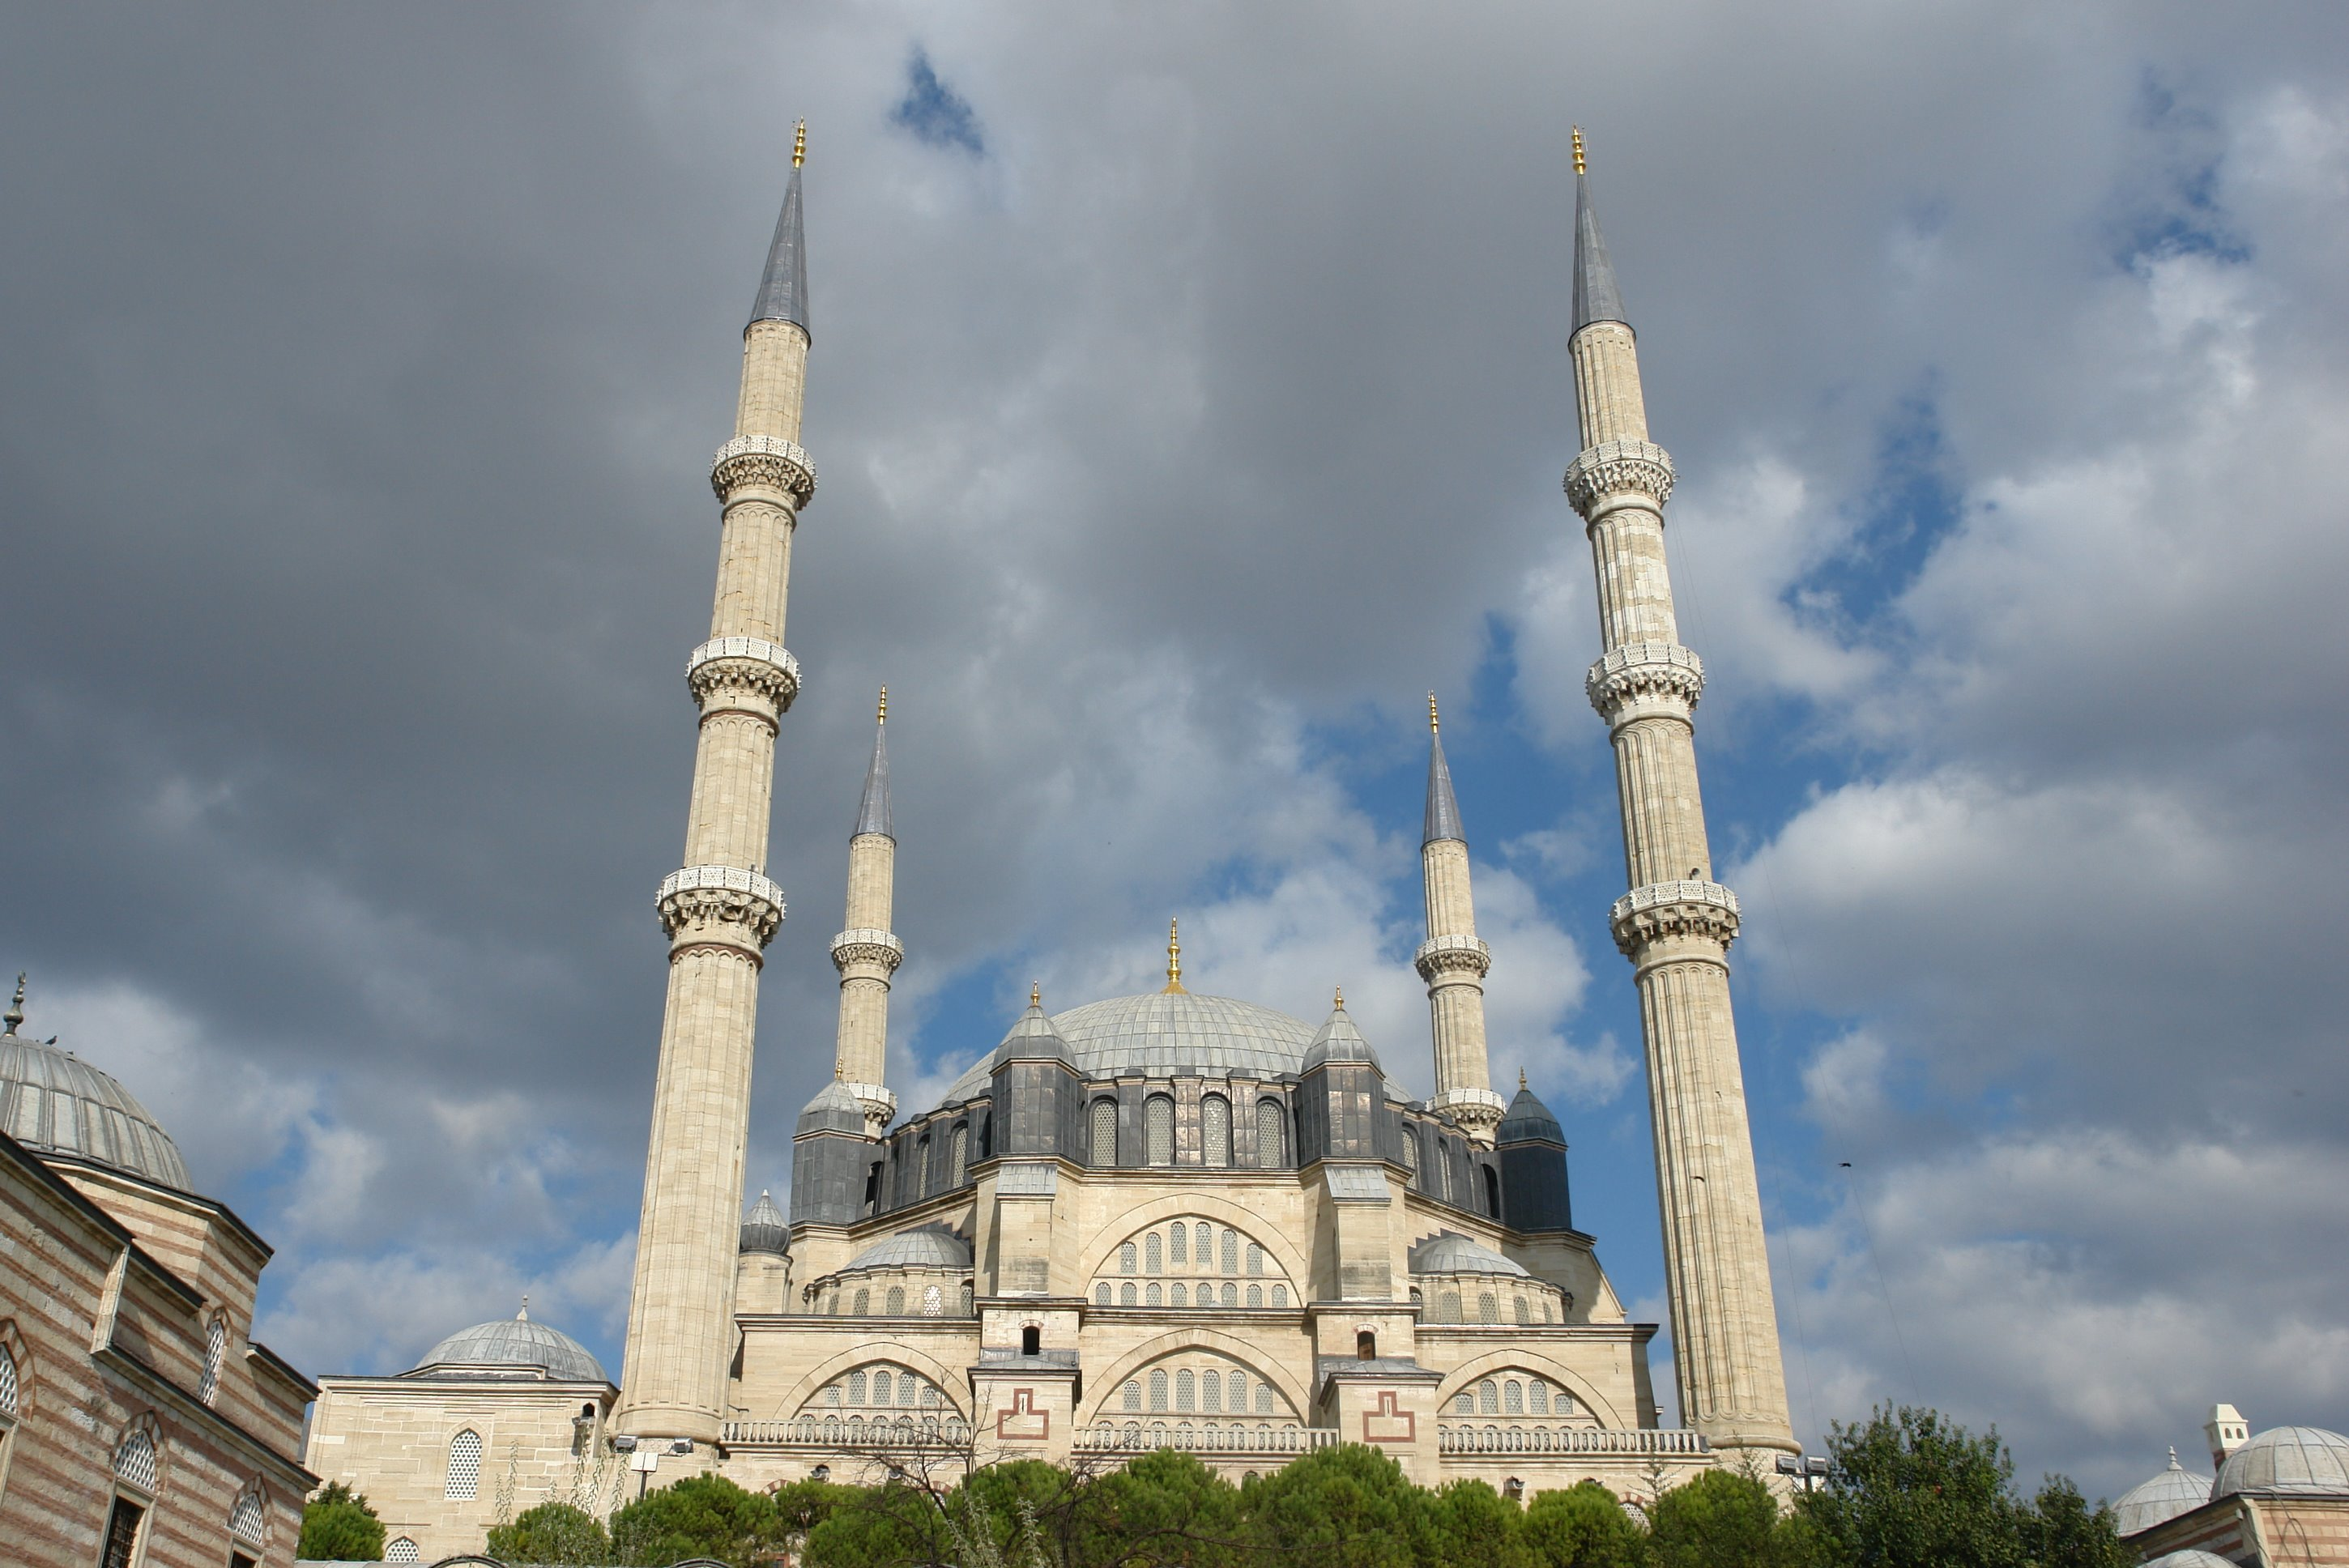 Selimiye Mosque - Mosque in Turkey - Thousand Wonders